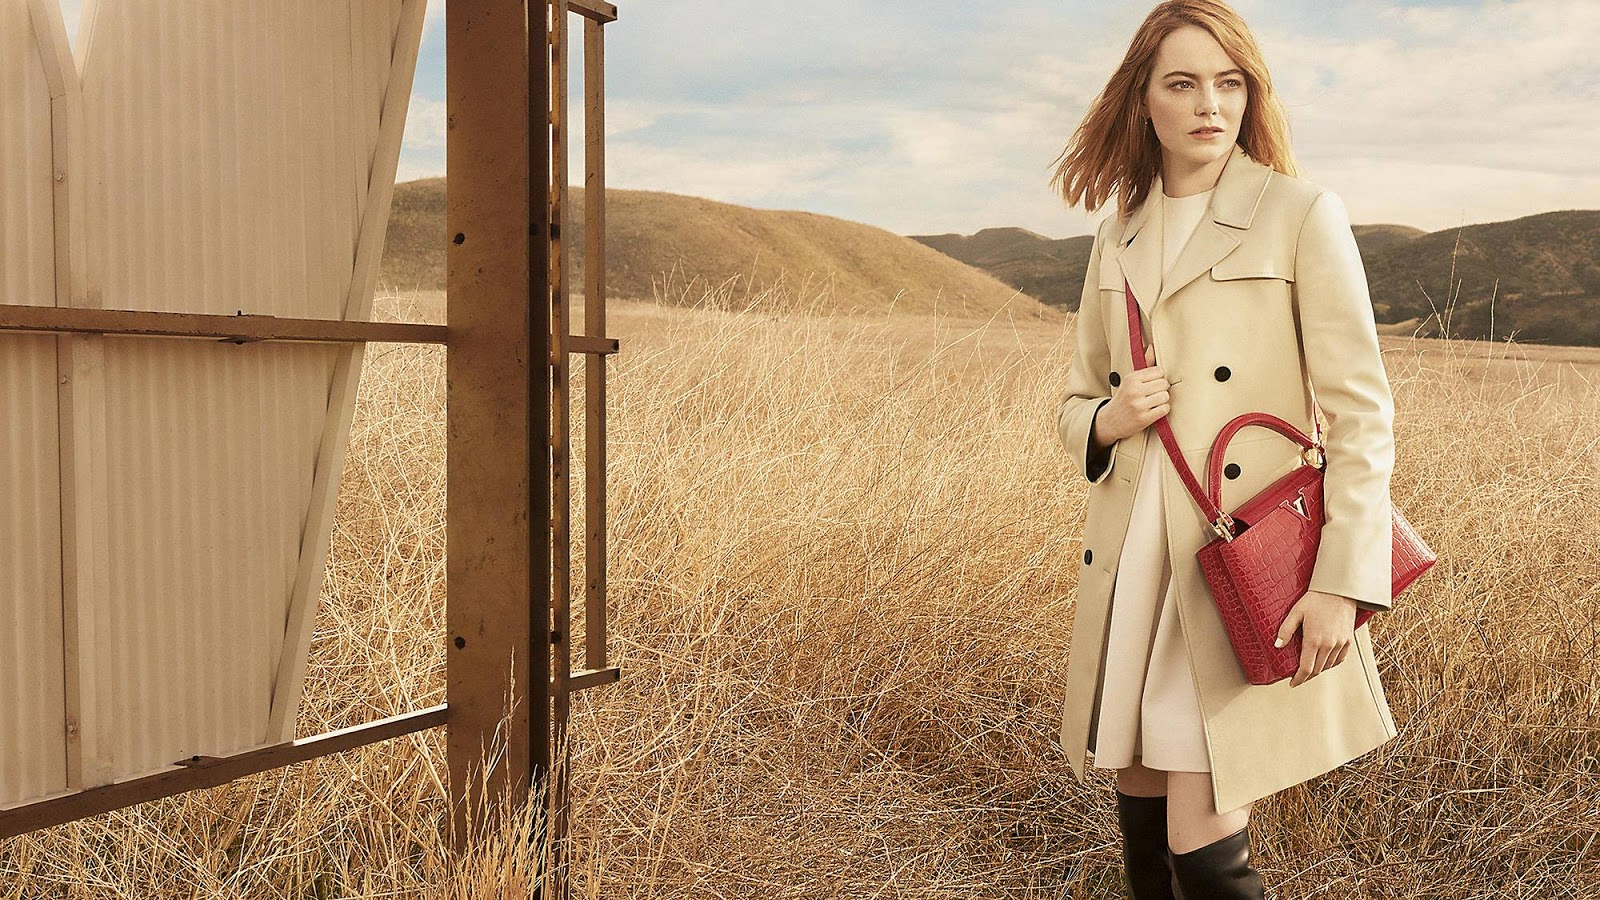 Louis Vuitton 'Spirit of Travel' 2018 Campaign ft. Emma Stone